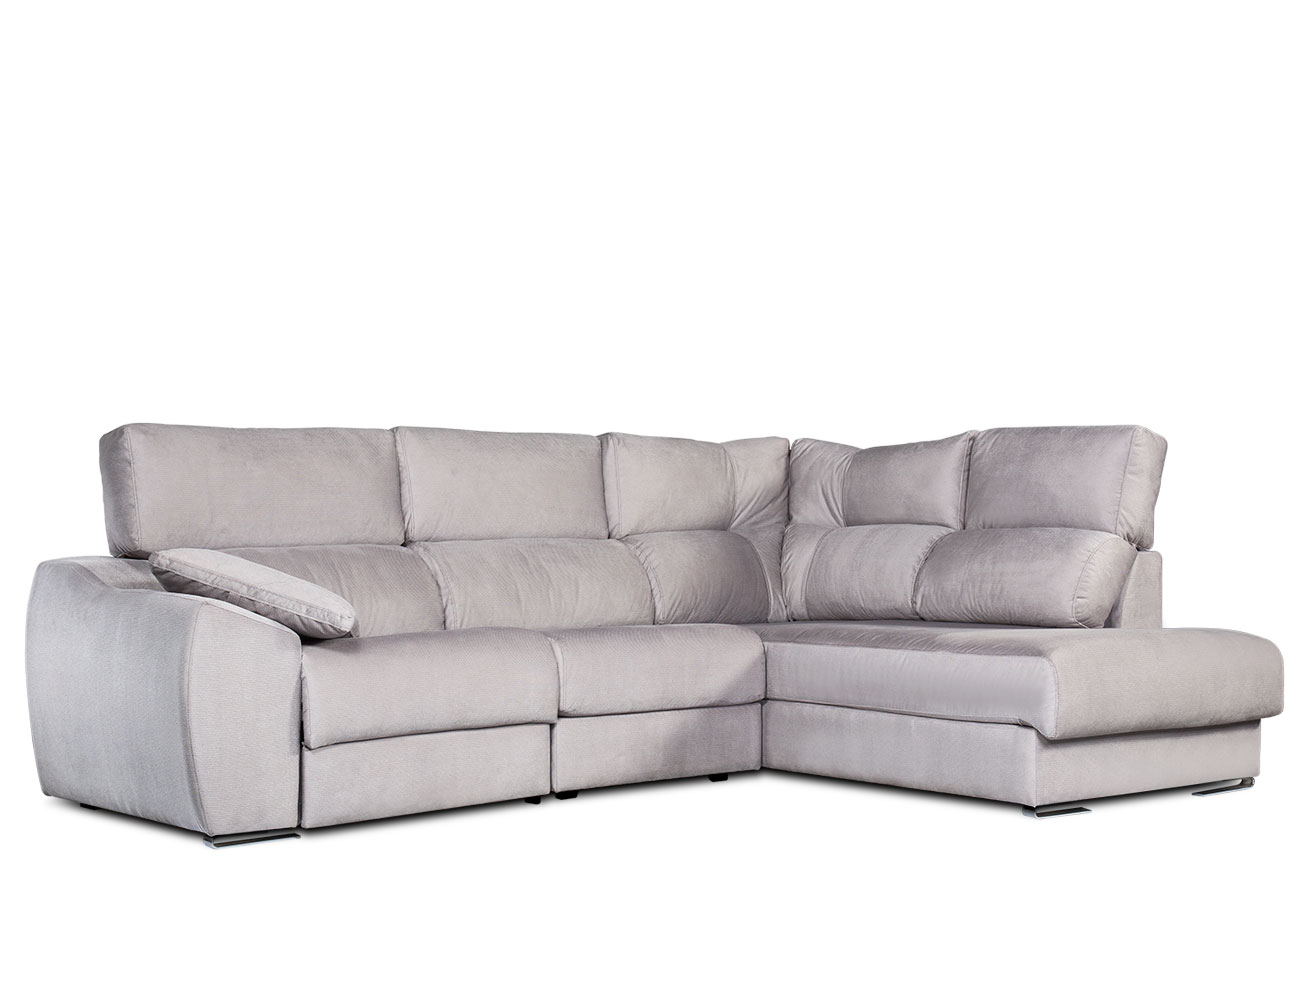 Sofa chaiselongue rincon electrico6